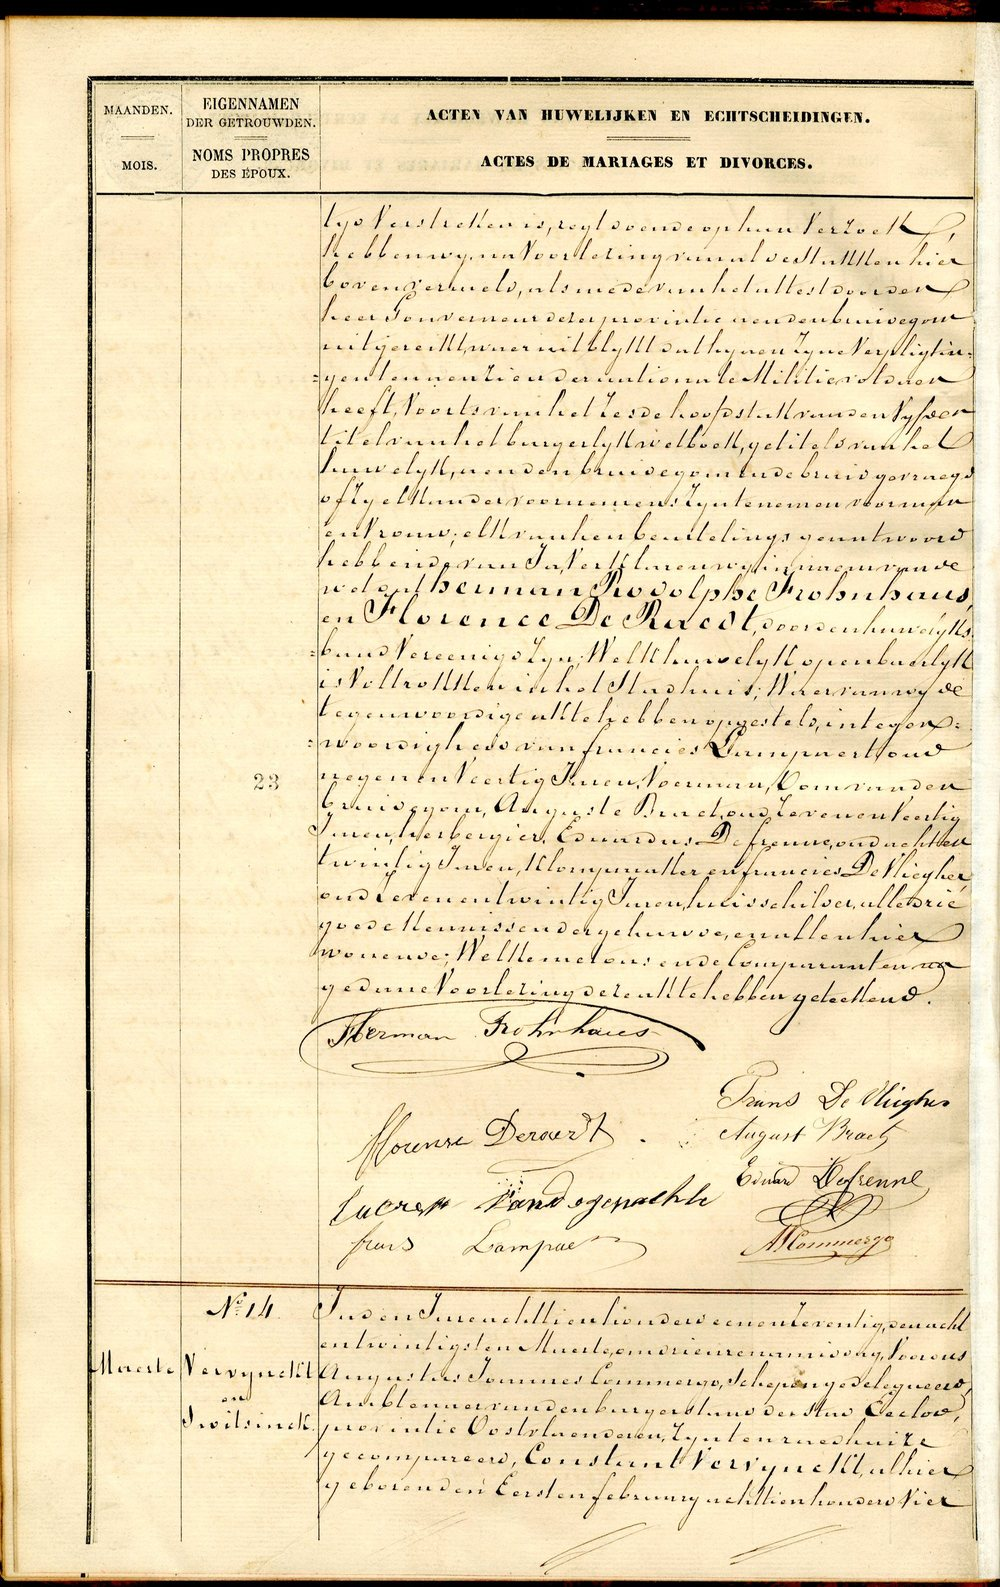 Civil Marriage Registration, Eeklo, Oost-Vlaanderen, Belgium, 1871